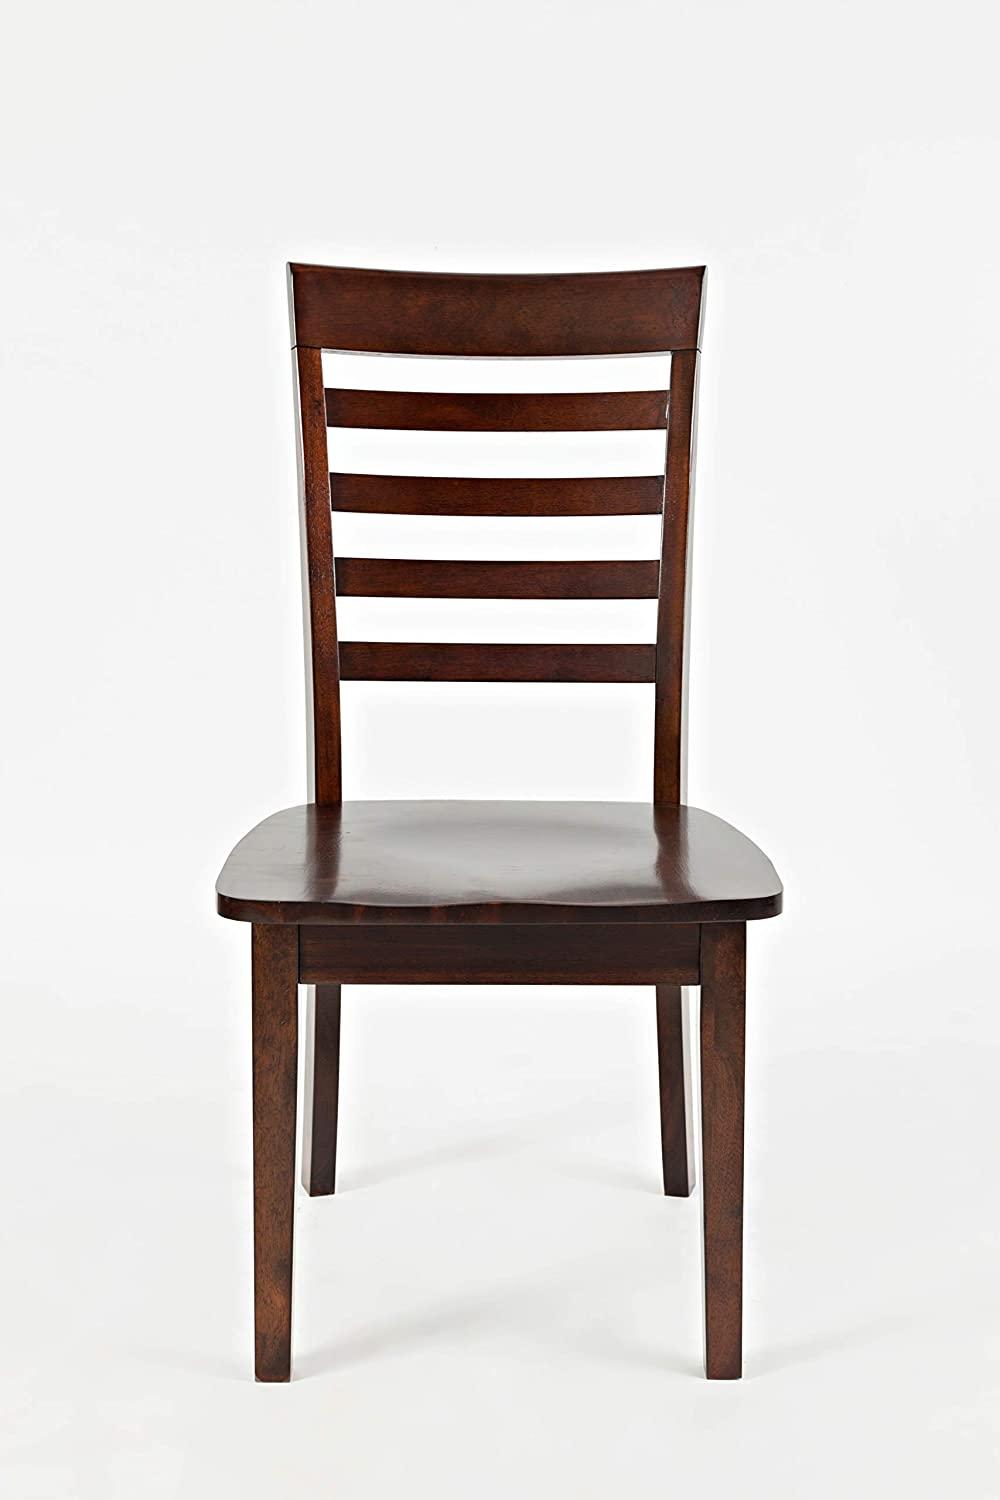 Brown Set of Two Benzara BM183832 Wooden Dining Chair with Ladder Back Design